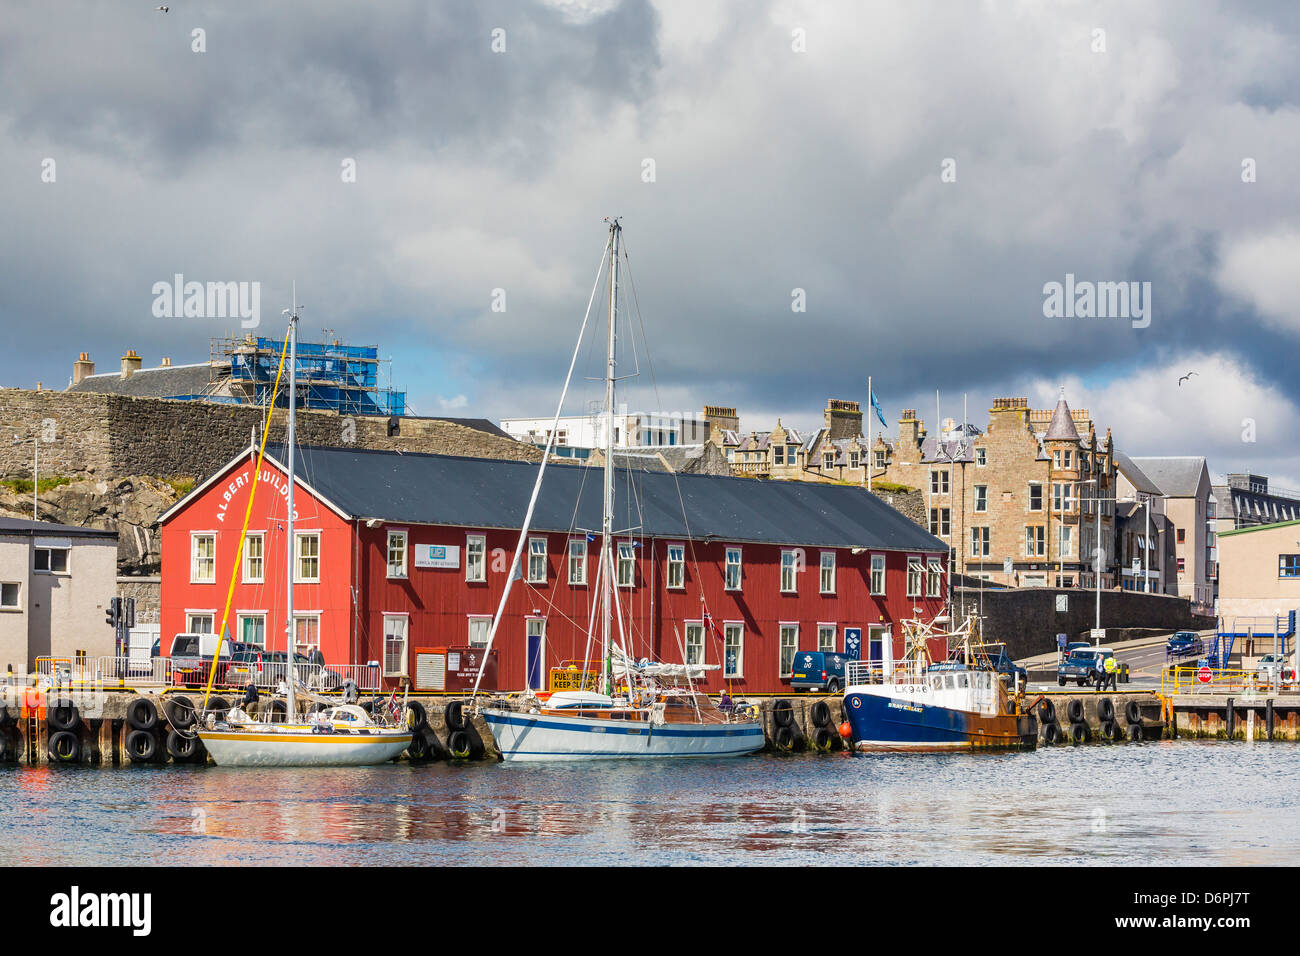 Views of the port city of Lerwick, Shetland Islands, Scotland, United Kingdom, Europe - Stock Image